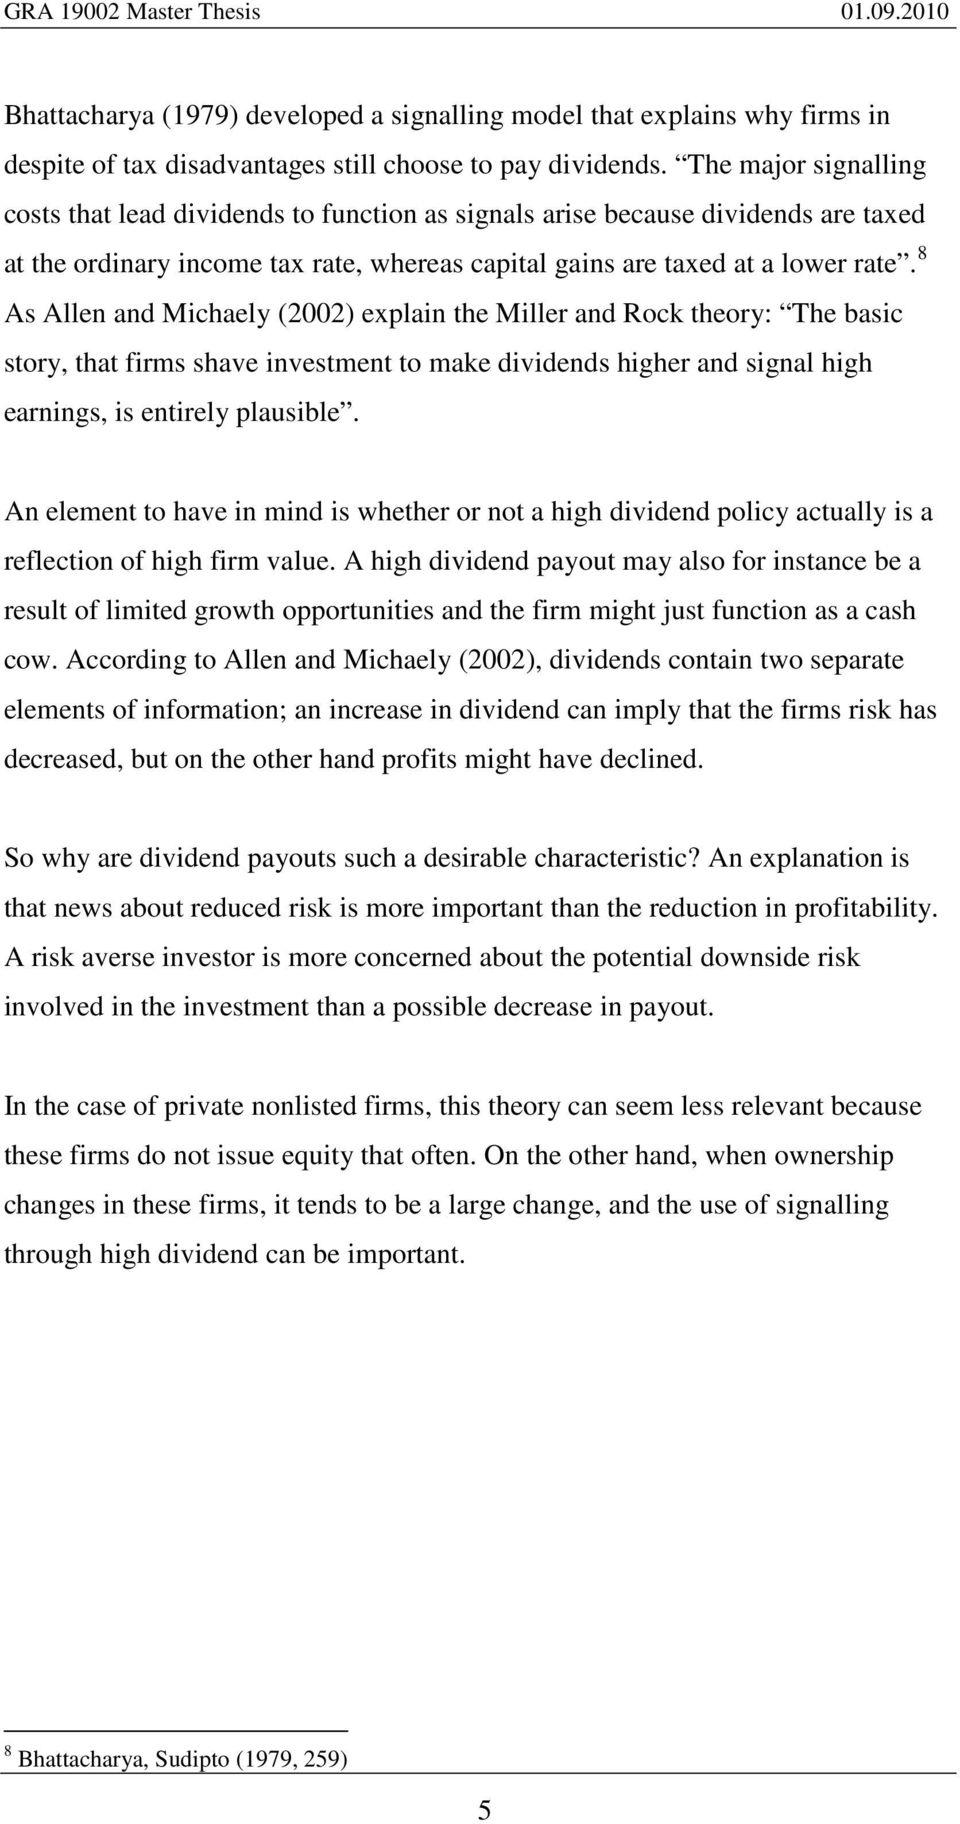 8 As Allen and Michaely (2002) explain the Miller and Rock theory: The basic story, that firms shave investment to make dividends higher and signal high earnings, is entirely plausible.